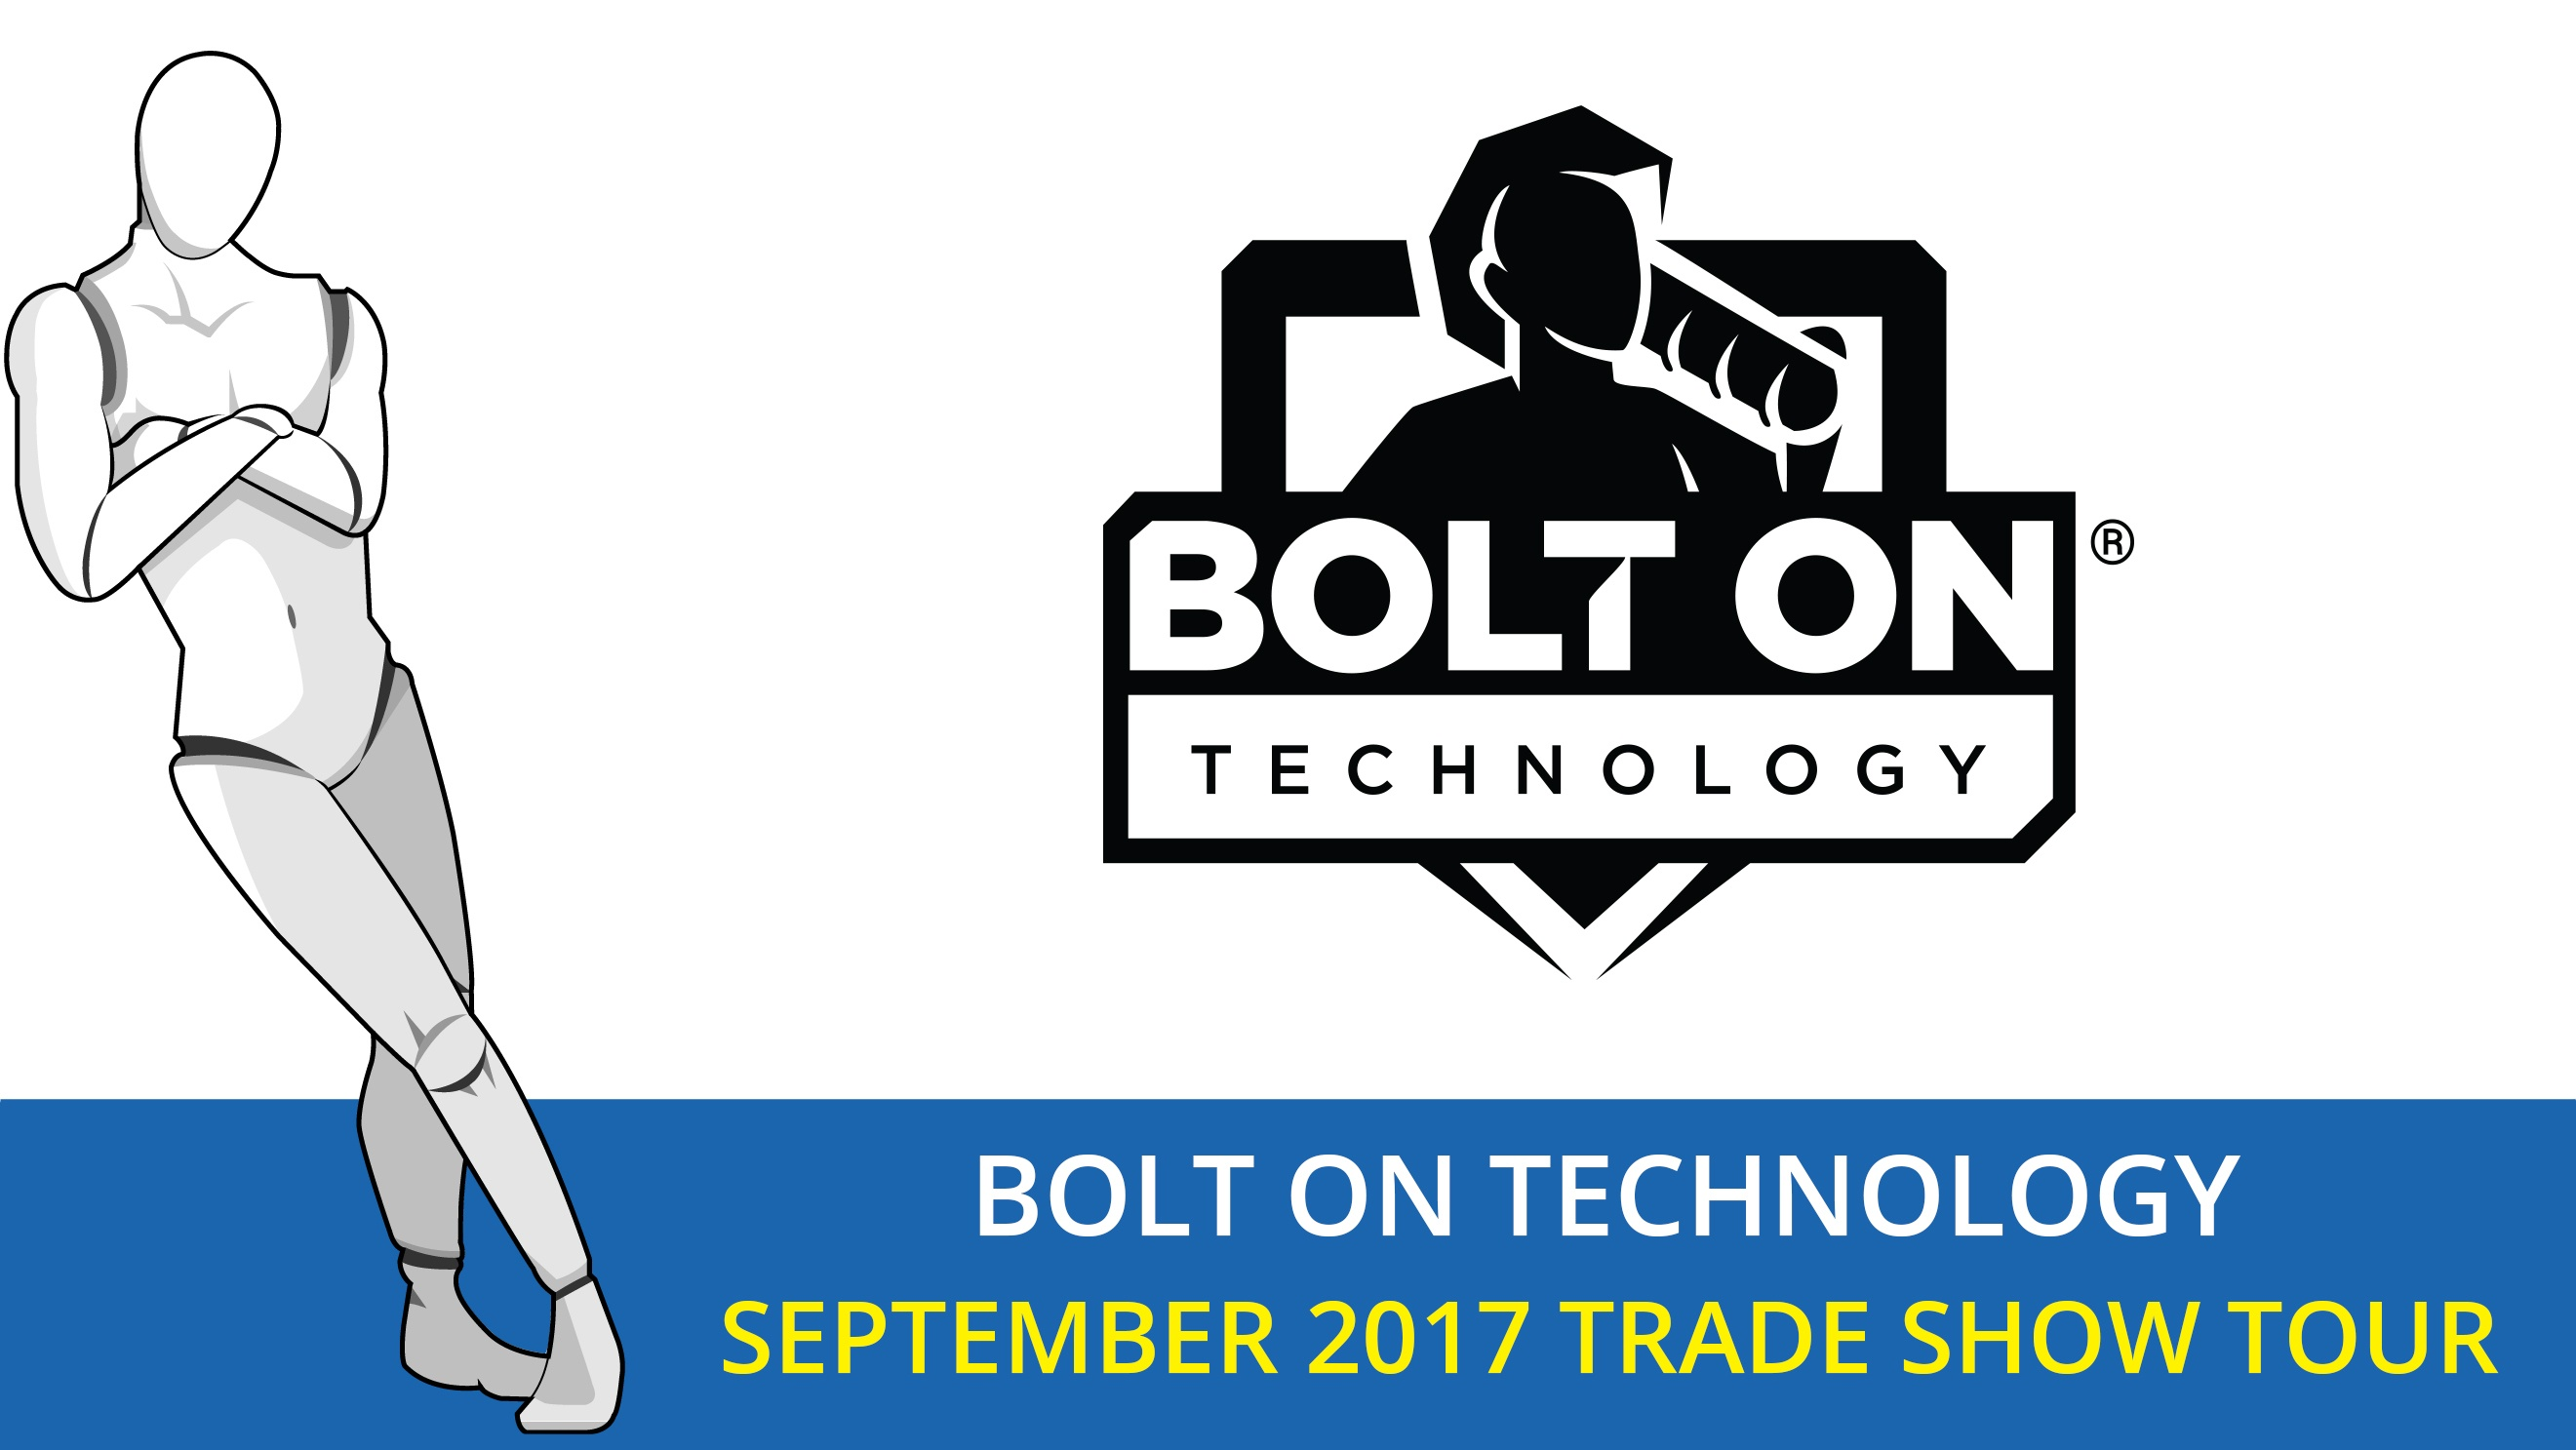 September 2017 Trade Show Schedule